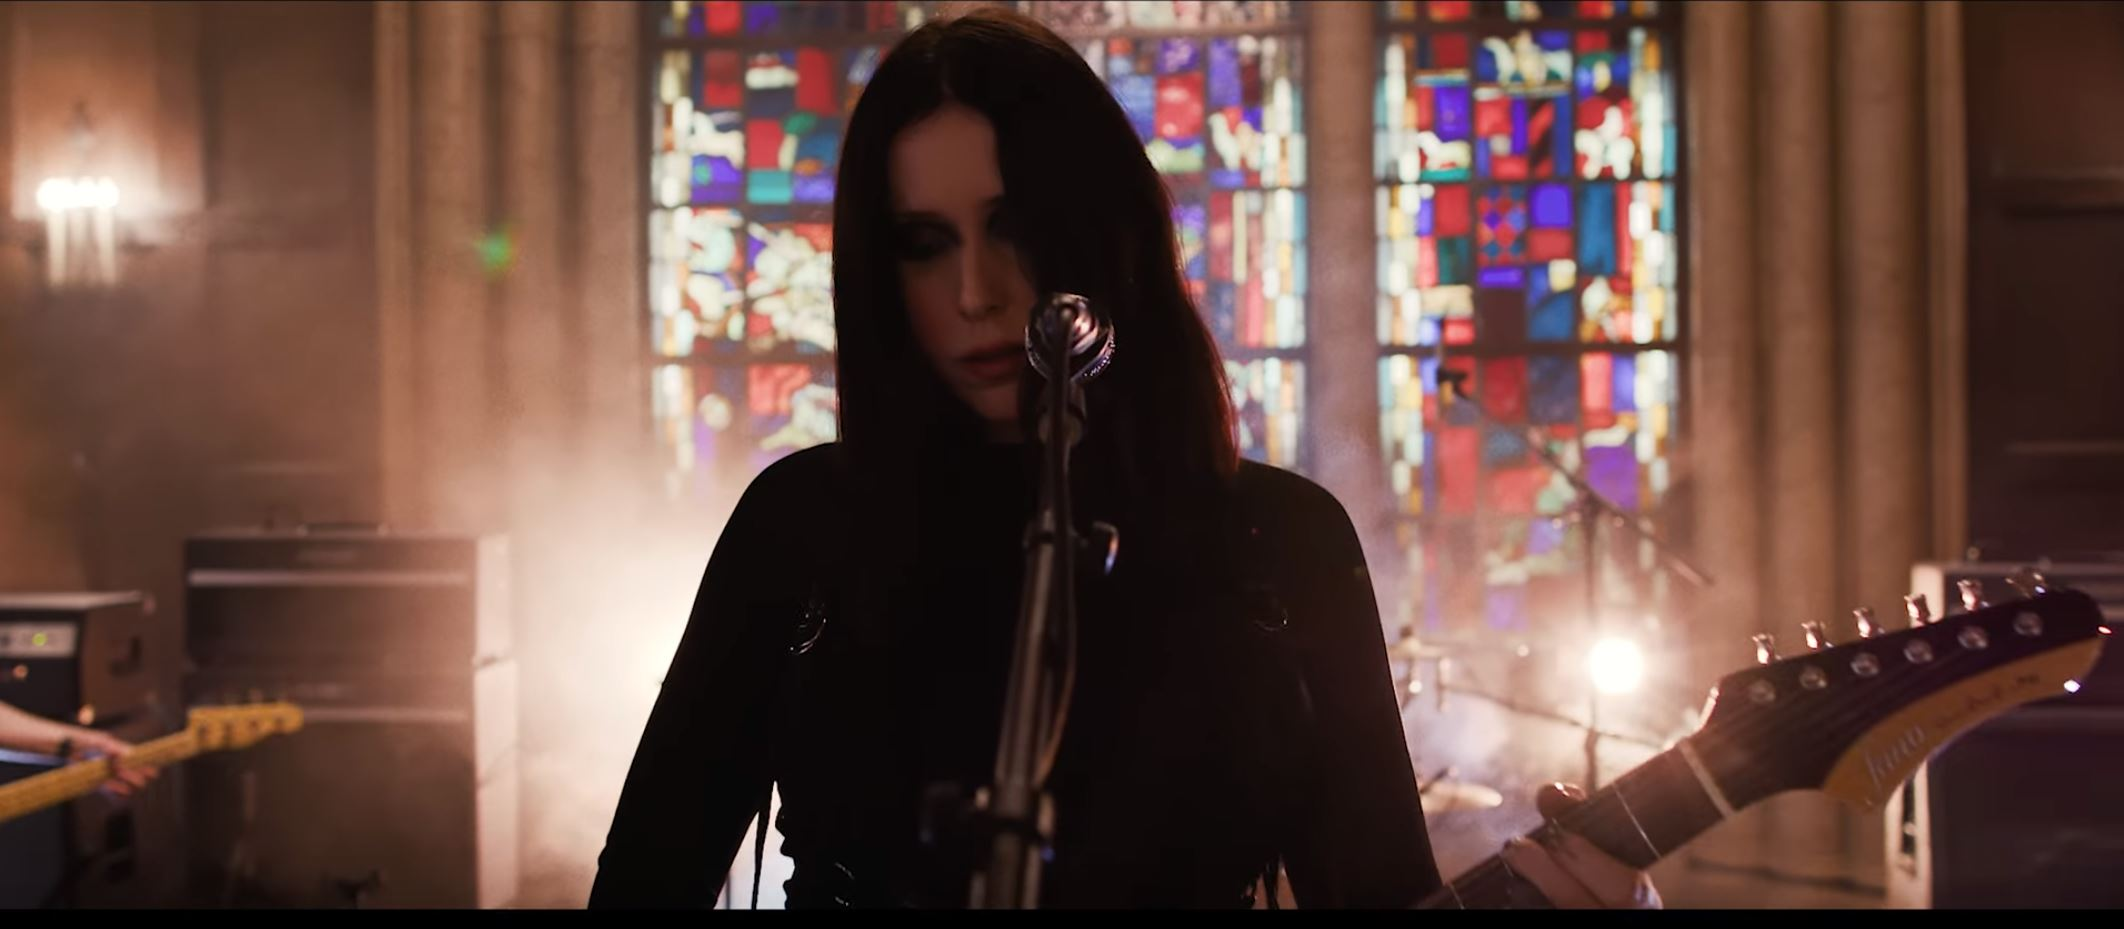 Watch Chelsea Wolfe Fantastic Live Performance With '16 Psyche' @ Audiotree